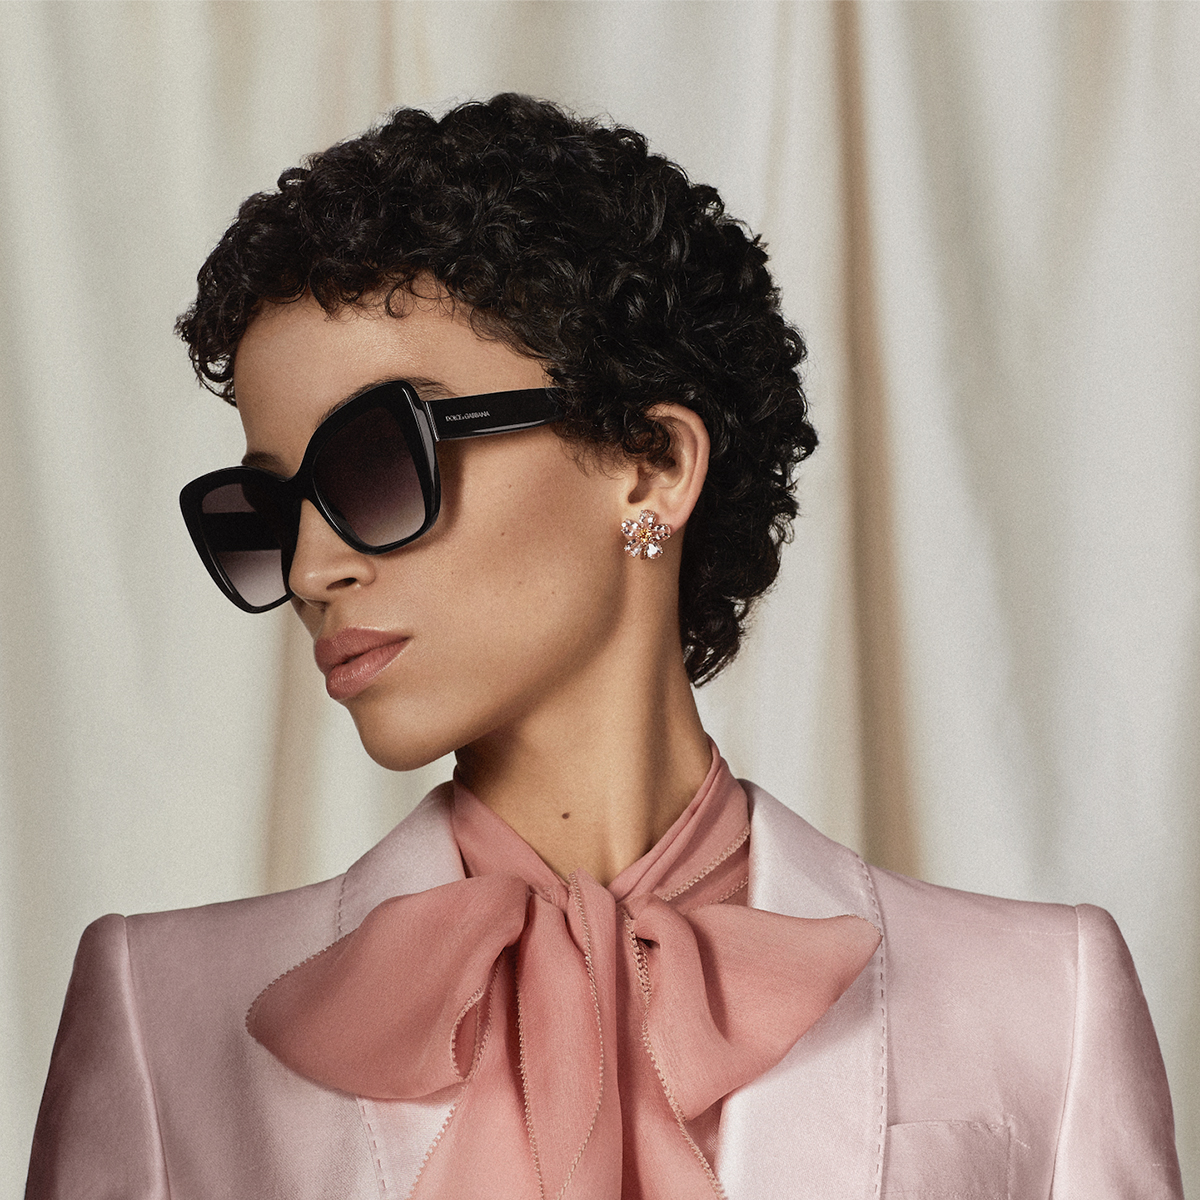 The #DolceGabbana sunglasses are characterised by a square shape and the brand's logo on acetate temples.  Discover the #DGEyewear at the link: